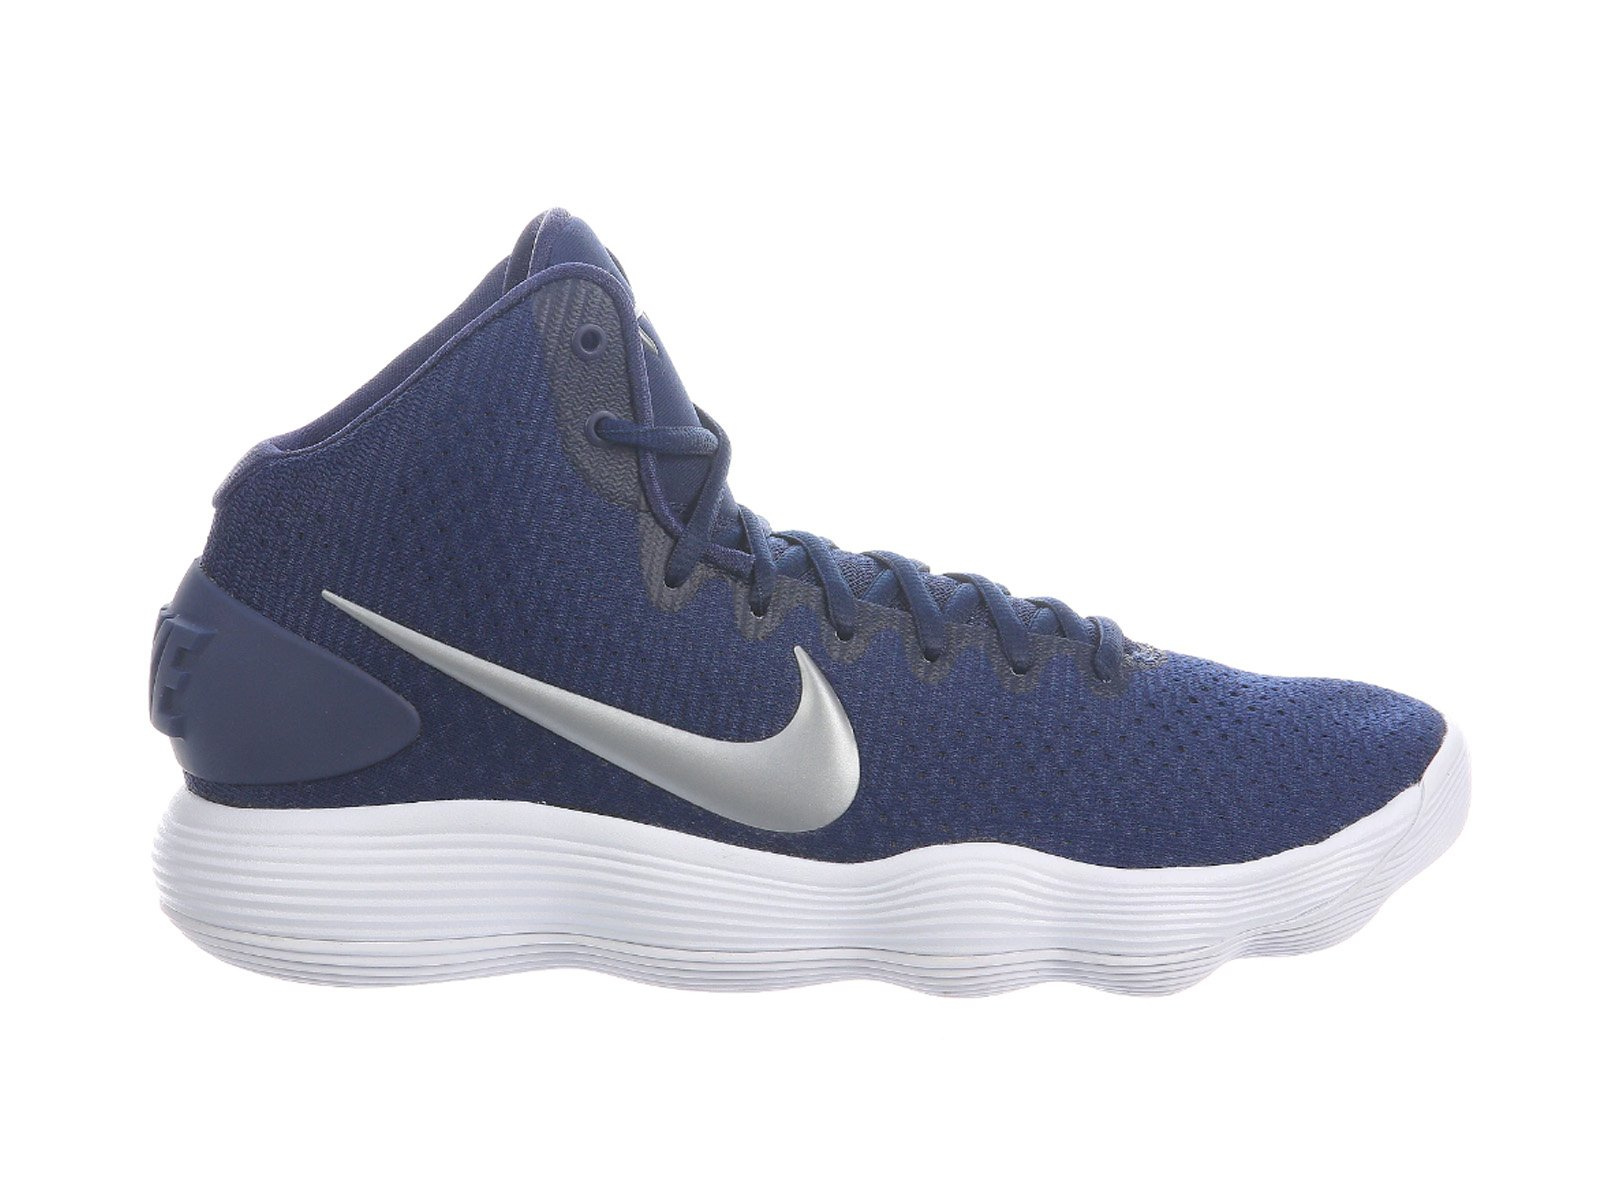 29214f8aa933a1 Galleon - NIKE Men s React Hyperdunk 2017 Midnight Navy Metallic Silver  White Nylon Running Shoes 8 D(M) US